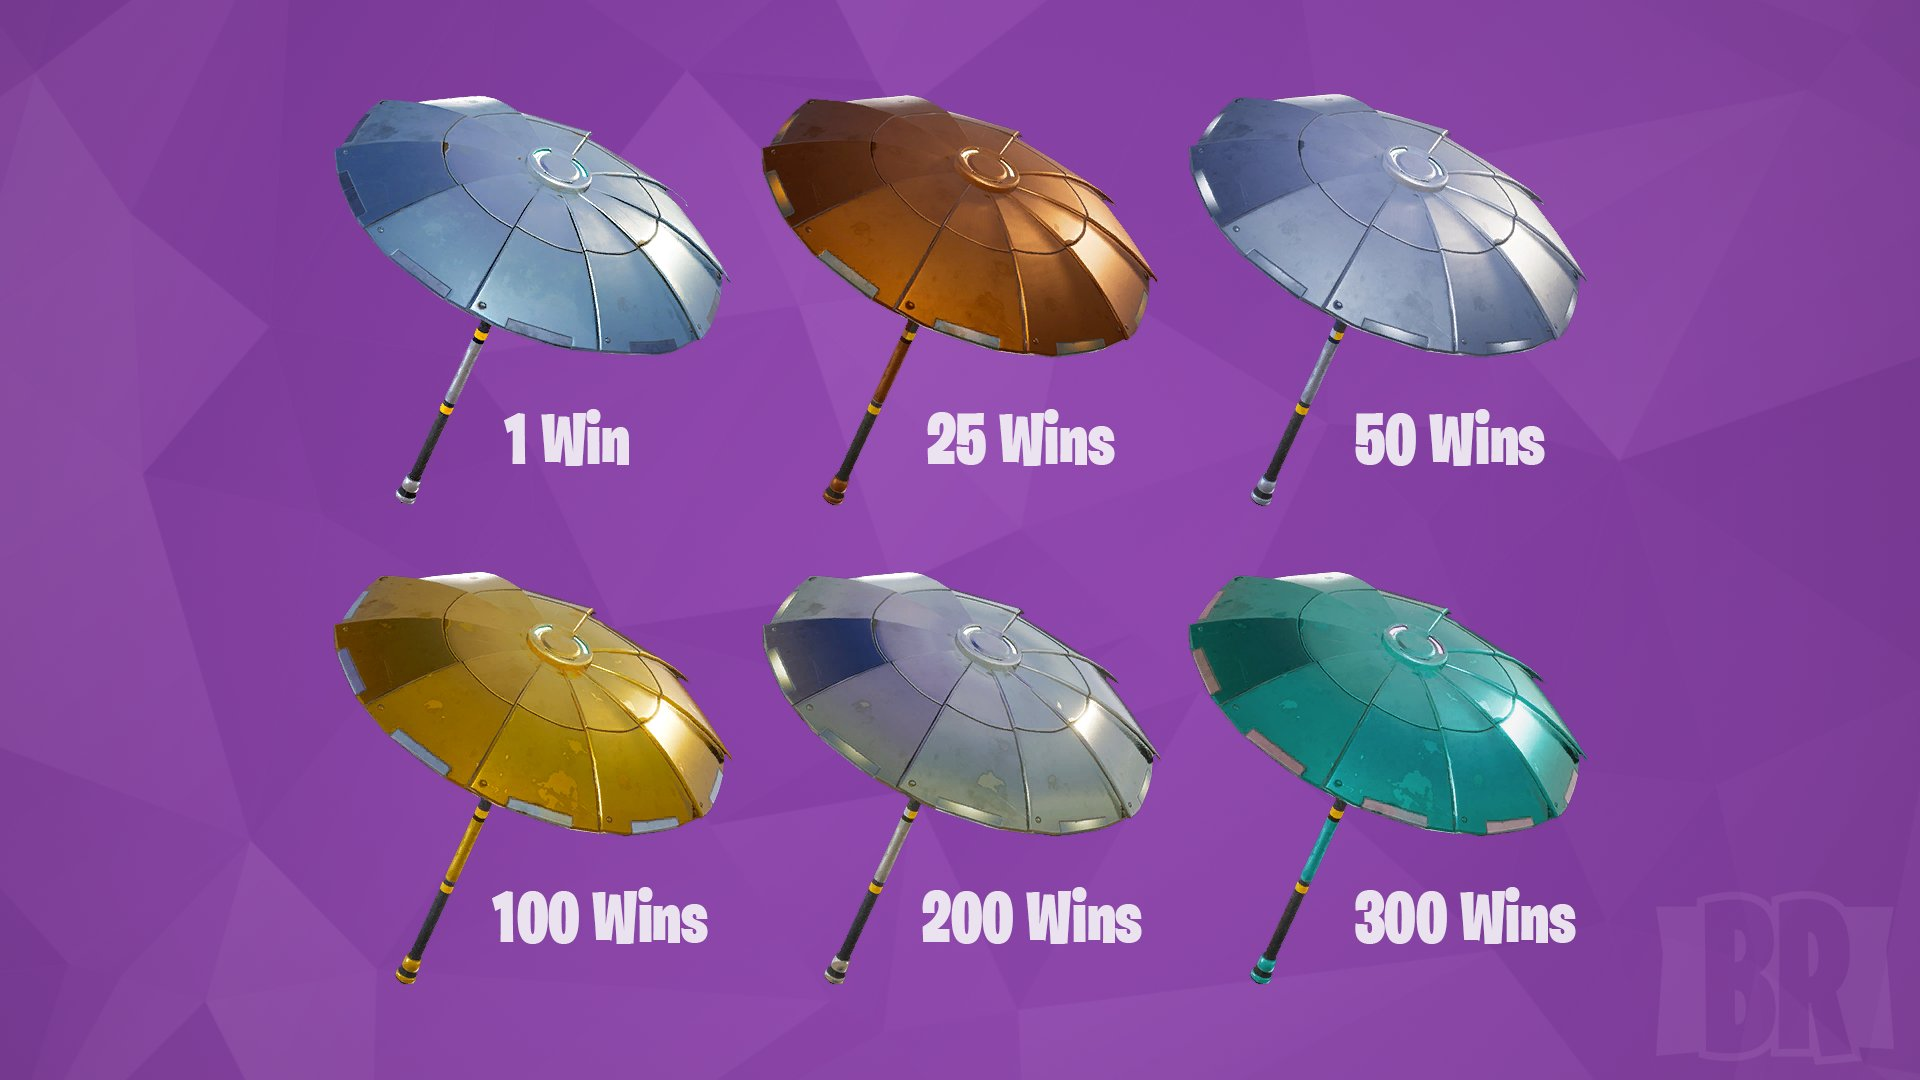 Fortnite Info On Twitter Quot 191 Te Gustar 237 A Ver Paraguas Que